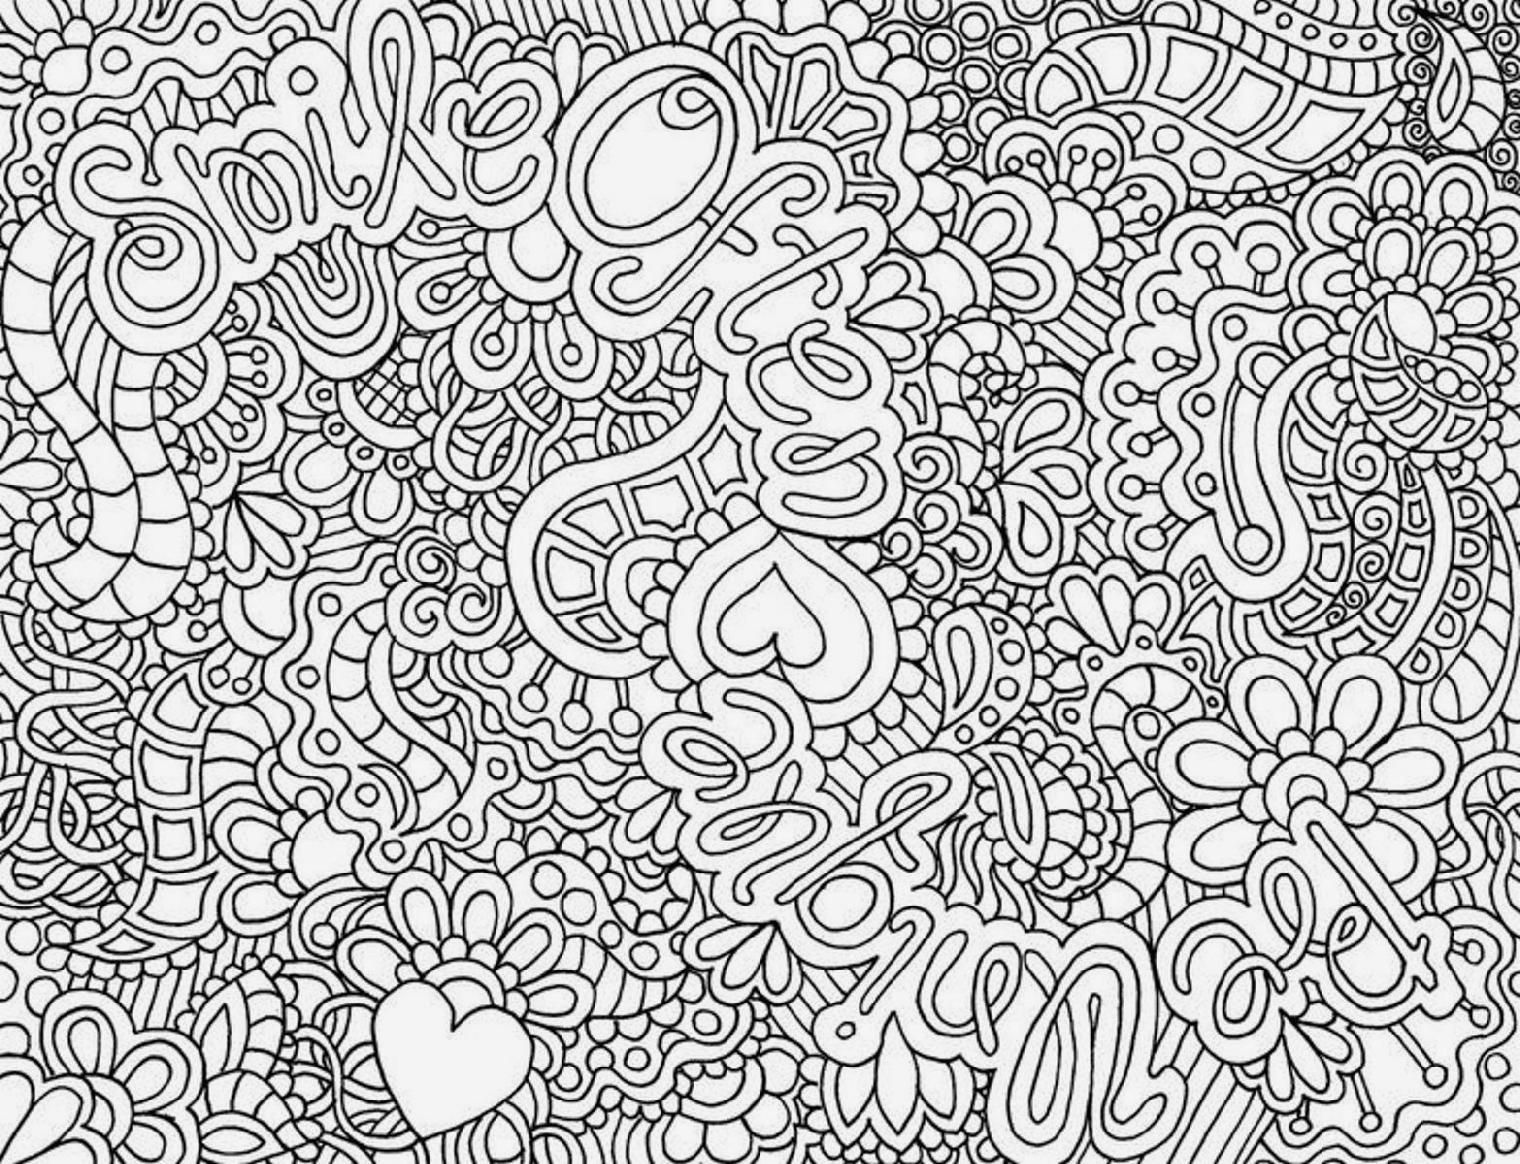 Complicated Coloring Pages Adults 461509 Jpg 1 520 1 164 Pixels Abstract Coloring Pages Detailed Coloring Pages Coloring Pages For Teenagers